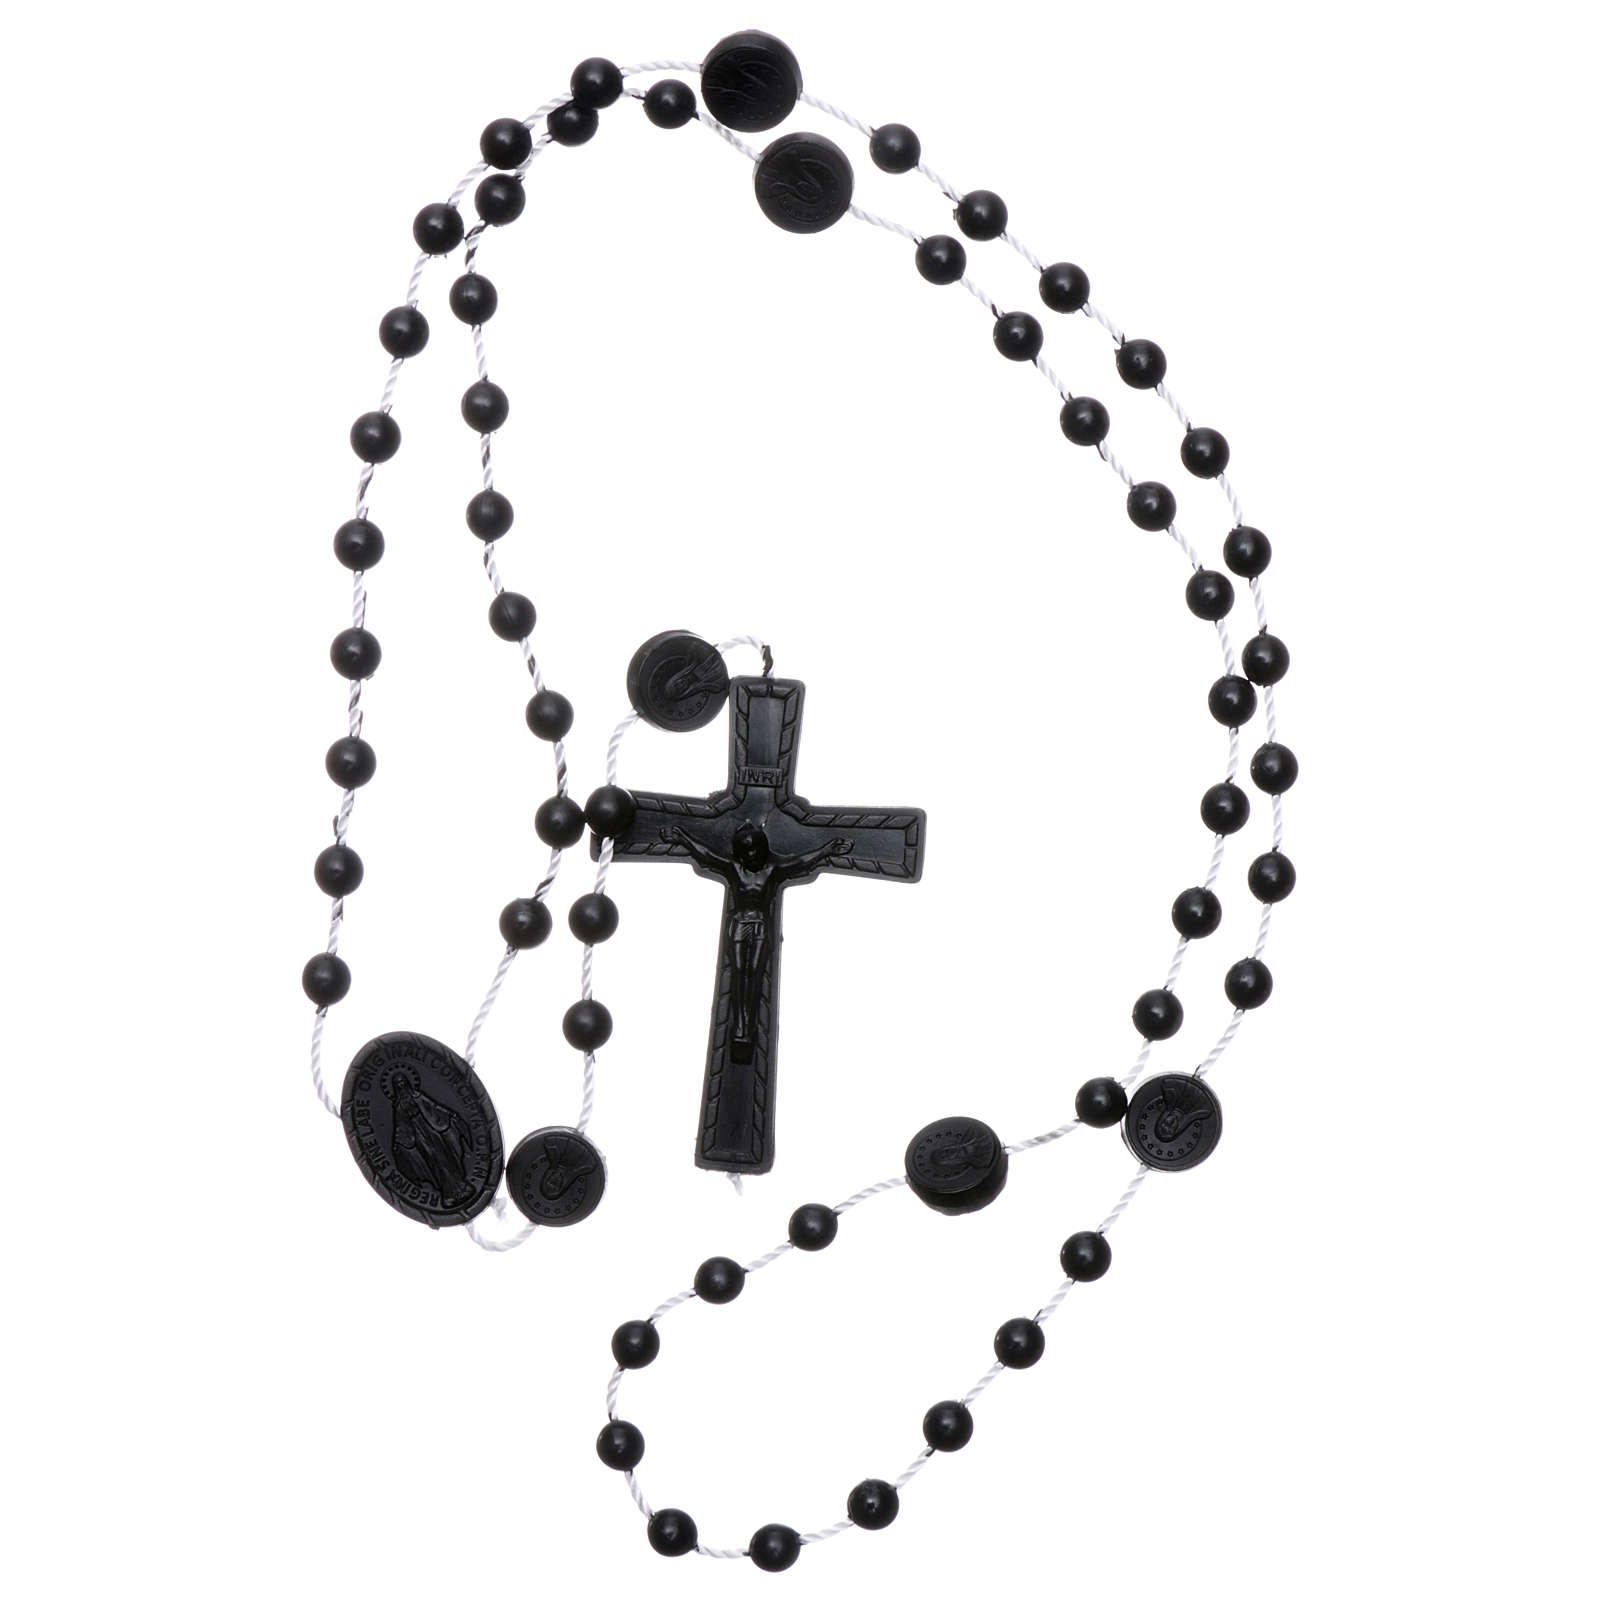 Nylon Our Lady of Miracles rosary in black color 4